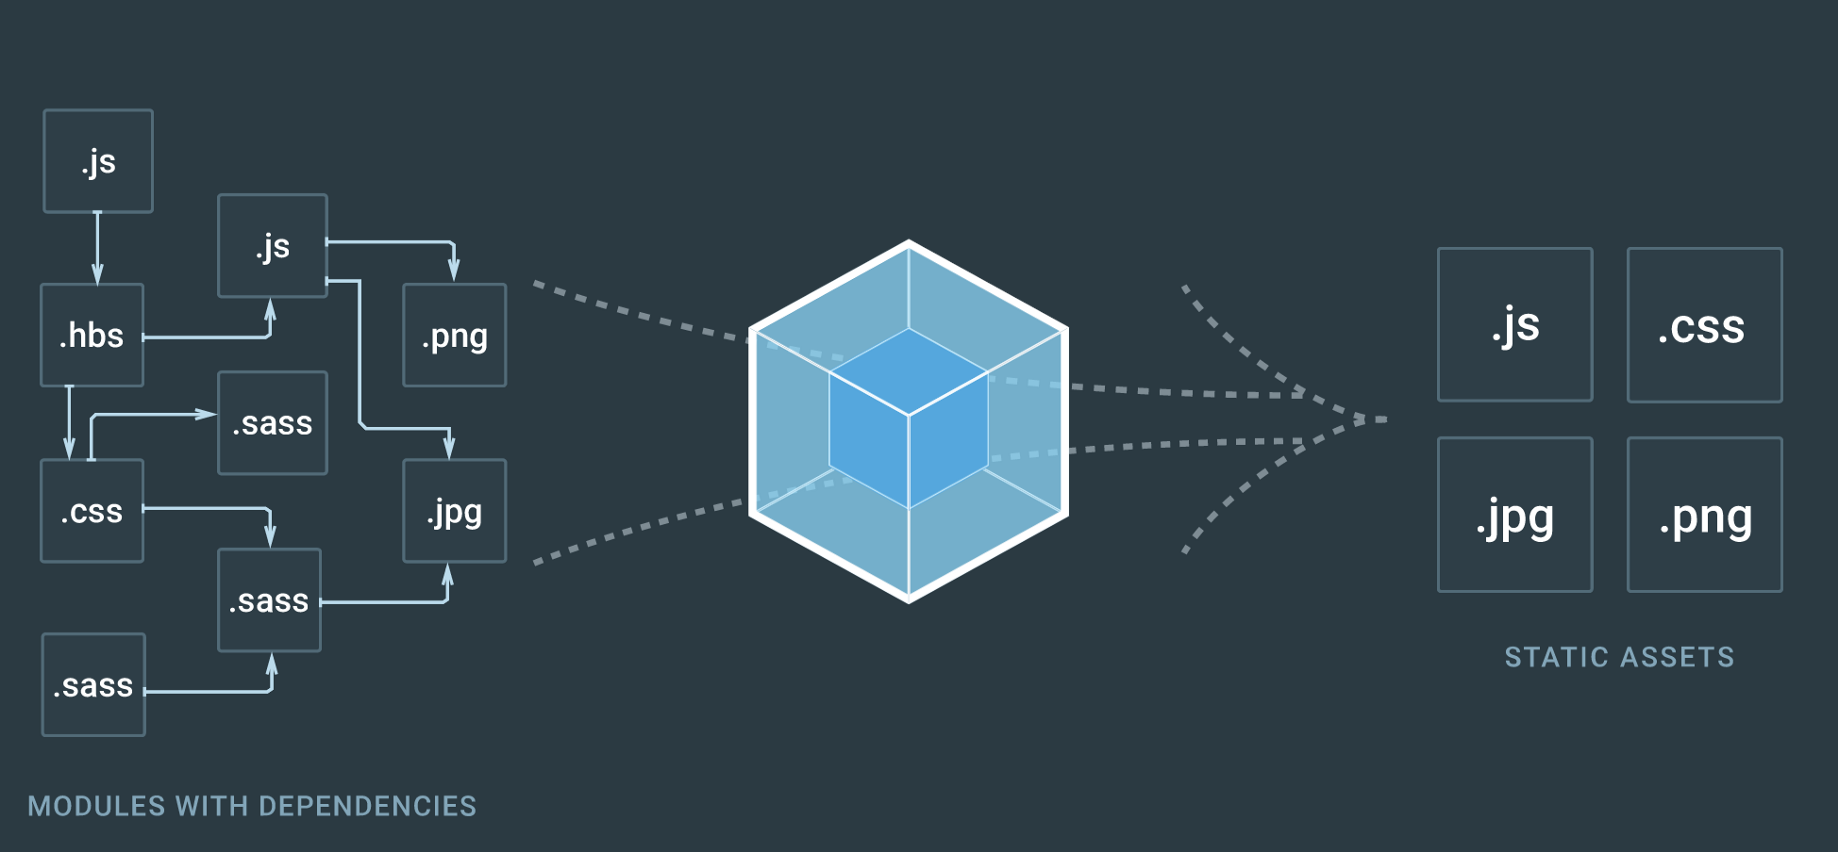 Learning AWS Lambda Can Help Automate Your Build Pipeline